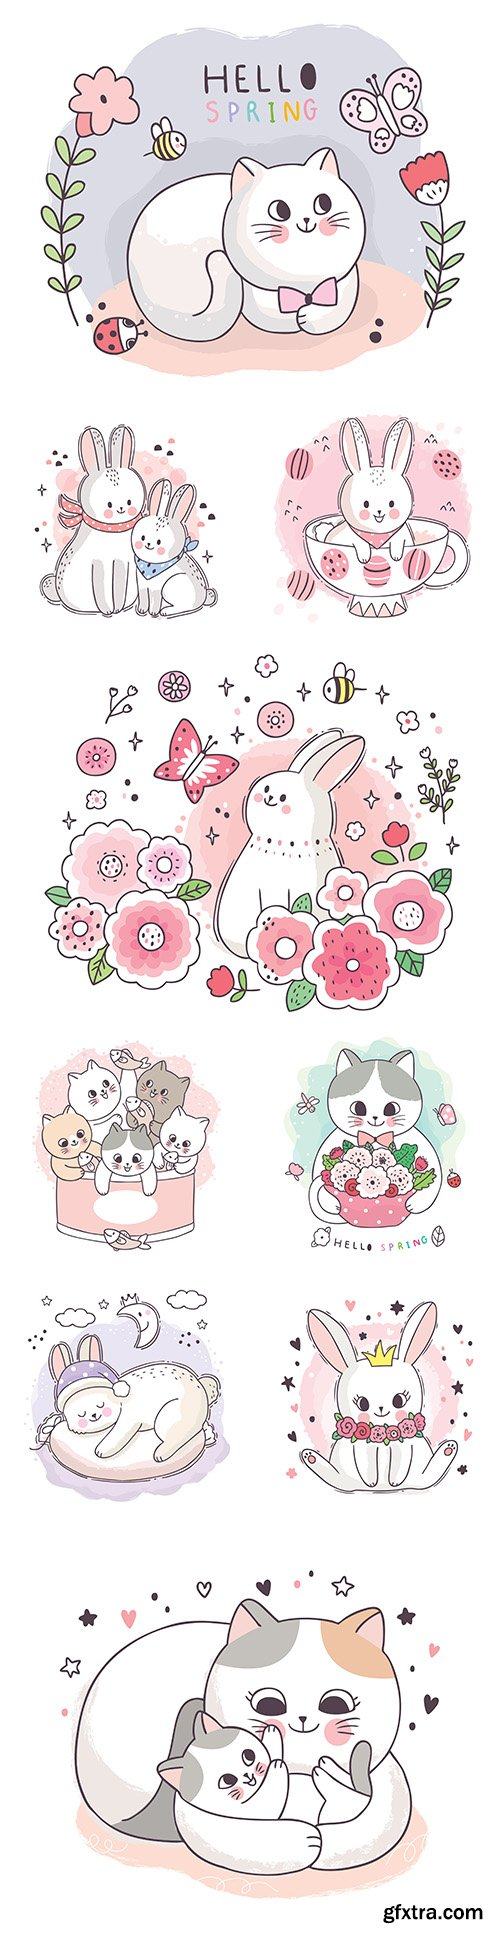 Cute kitten and Easter bunny cartoon painted illustrations